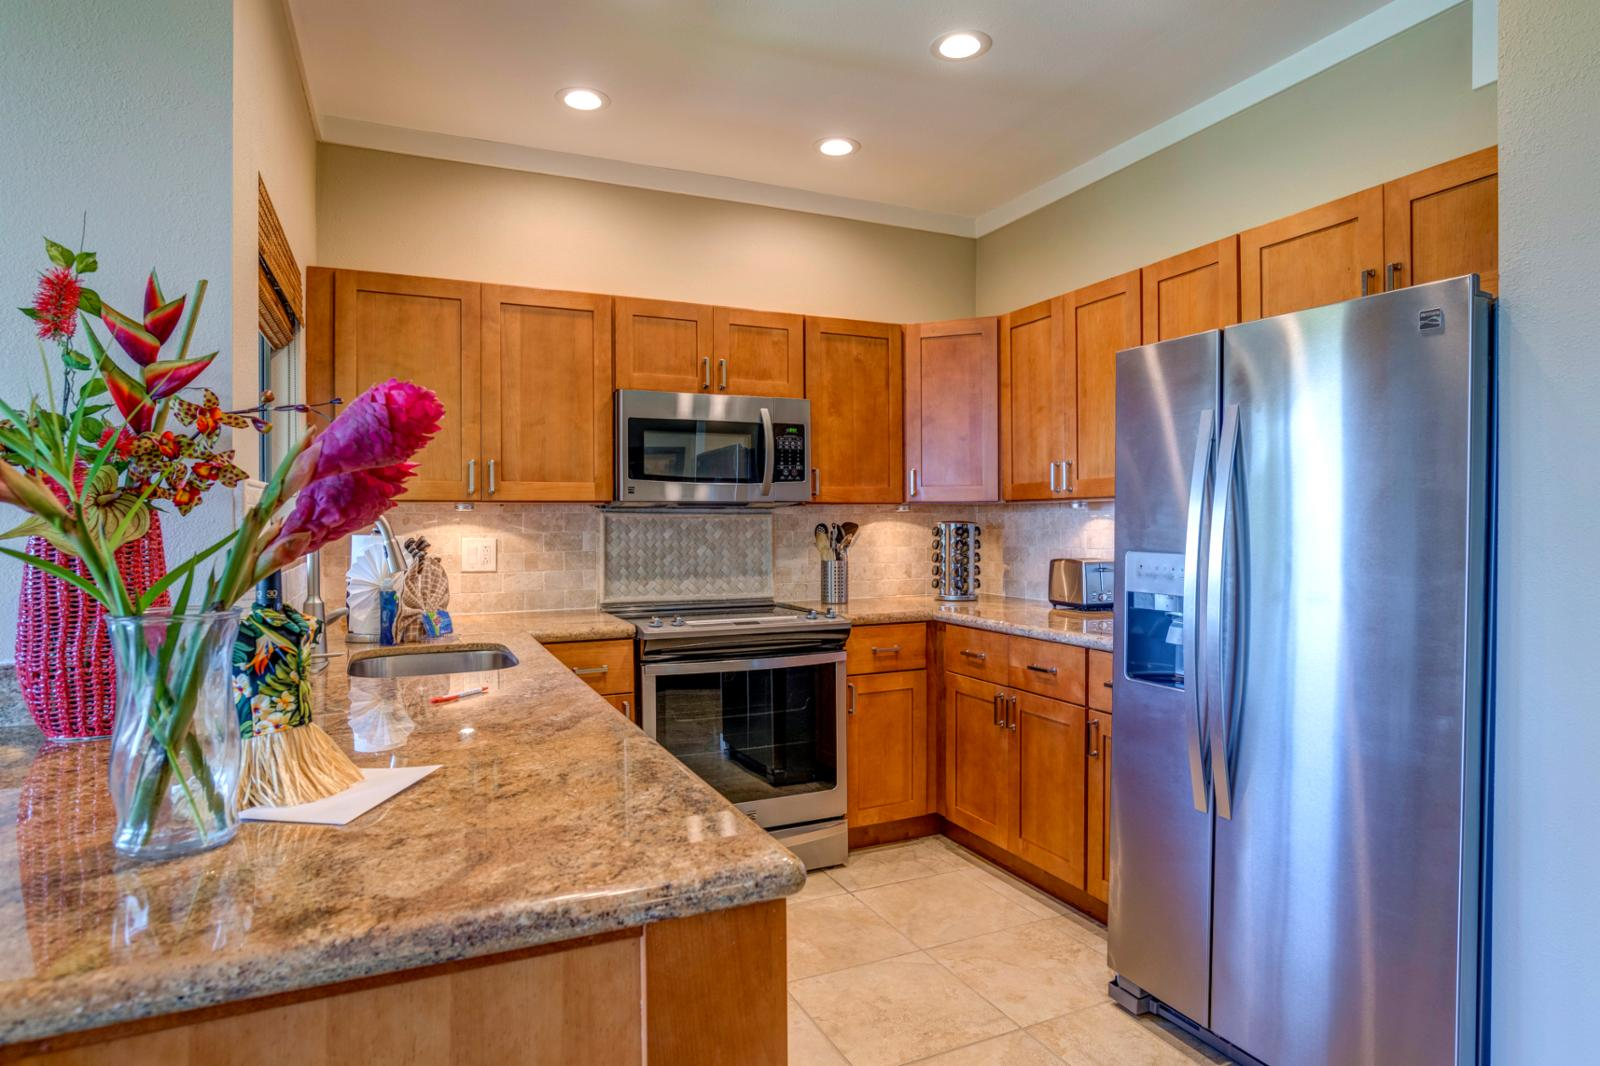 Stunning stainless appliances ready for your use, kitchen comes fully equipped